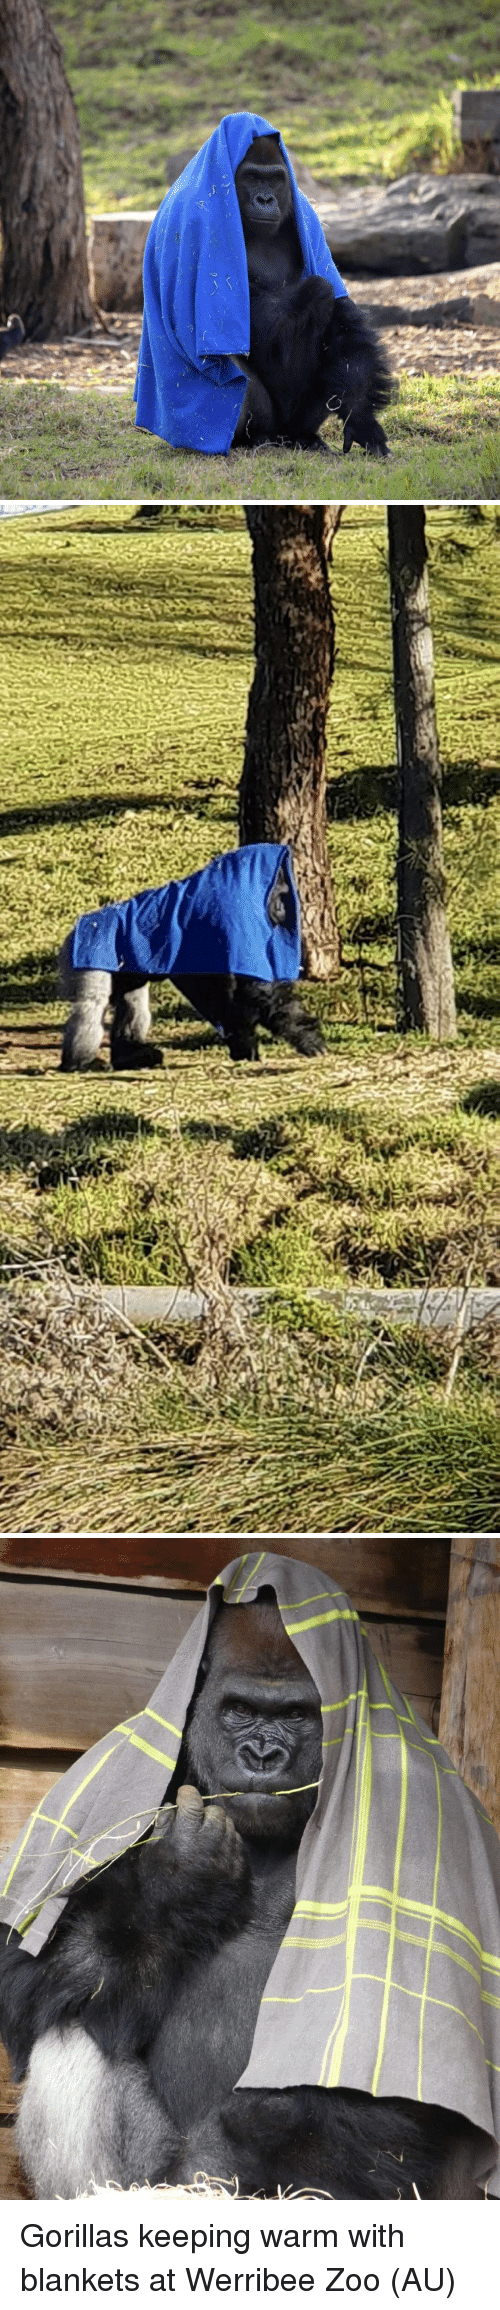 Zoo, Gorillas, and Warm: Gorillas keeping warm with blankets at Werribee Zoo (AU)